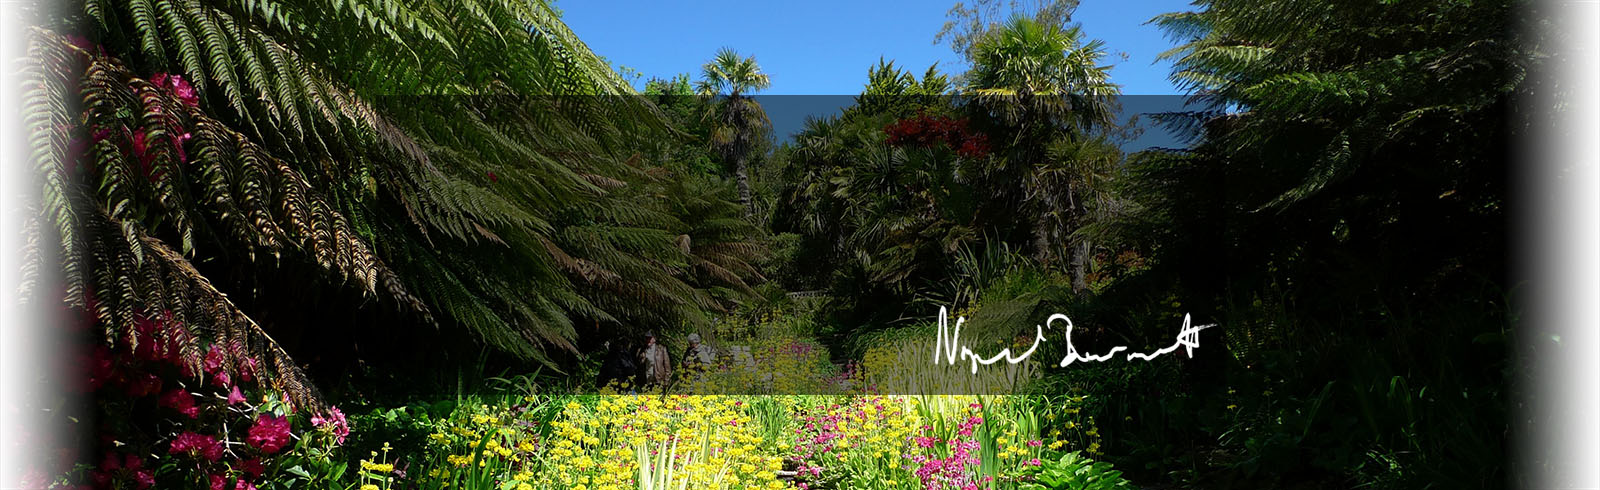 Lush image of the Gardens at Trebar with signature of N Burnett, client of Hodgsons Chartered Accountants in Cornwall